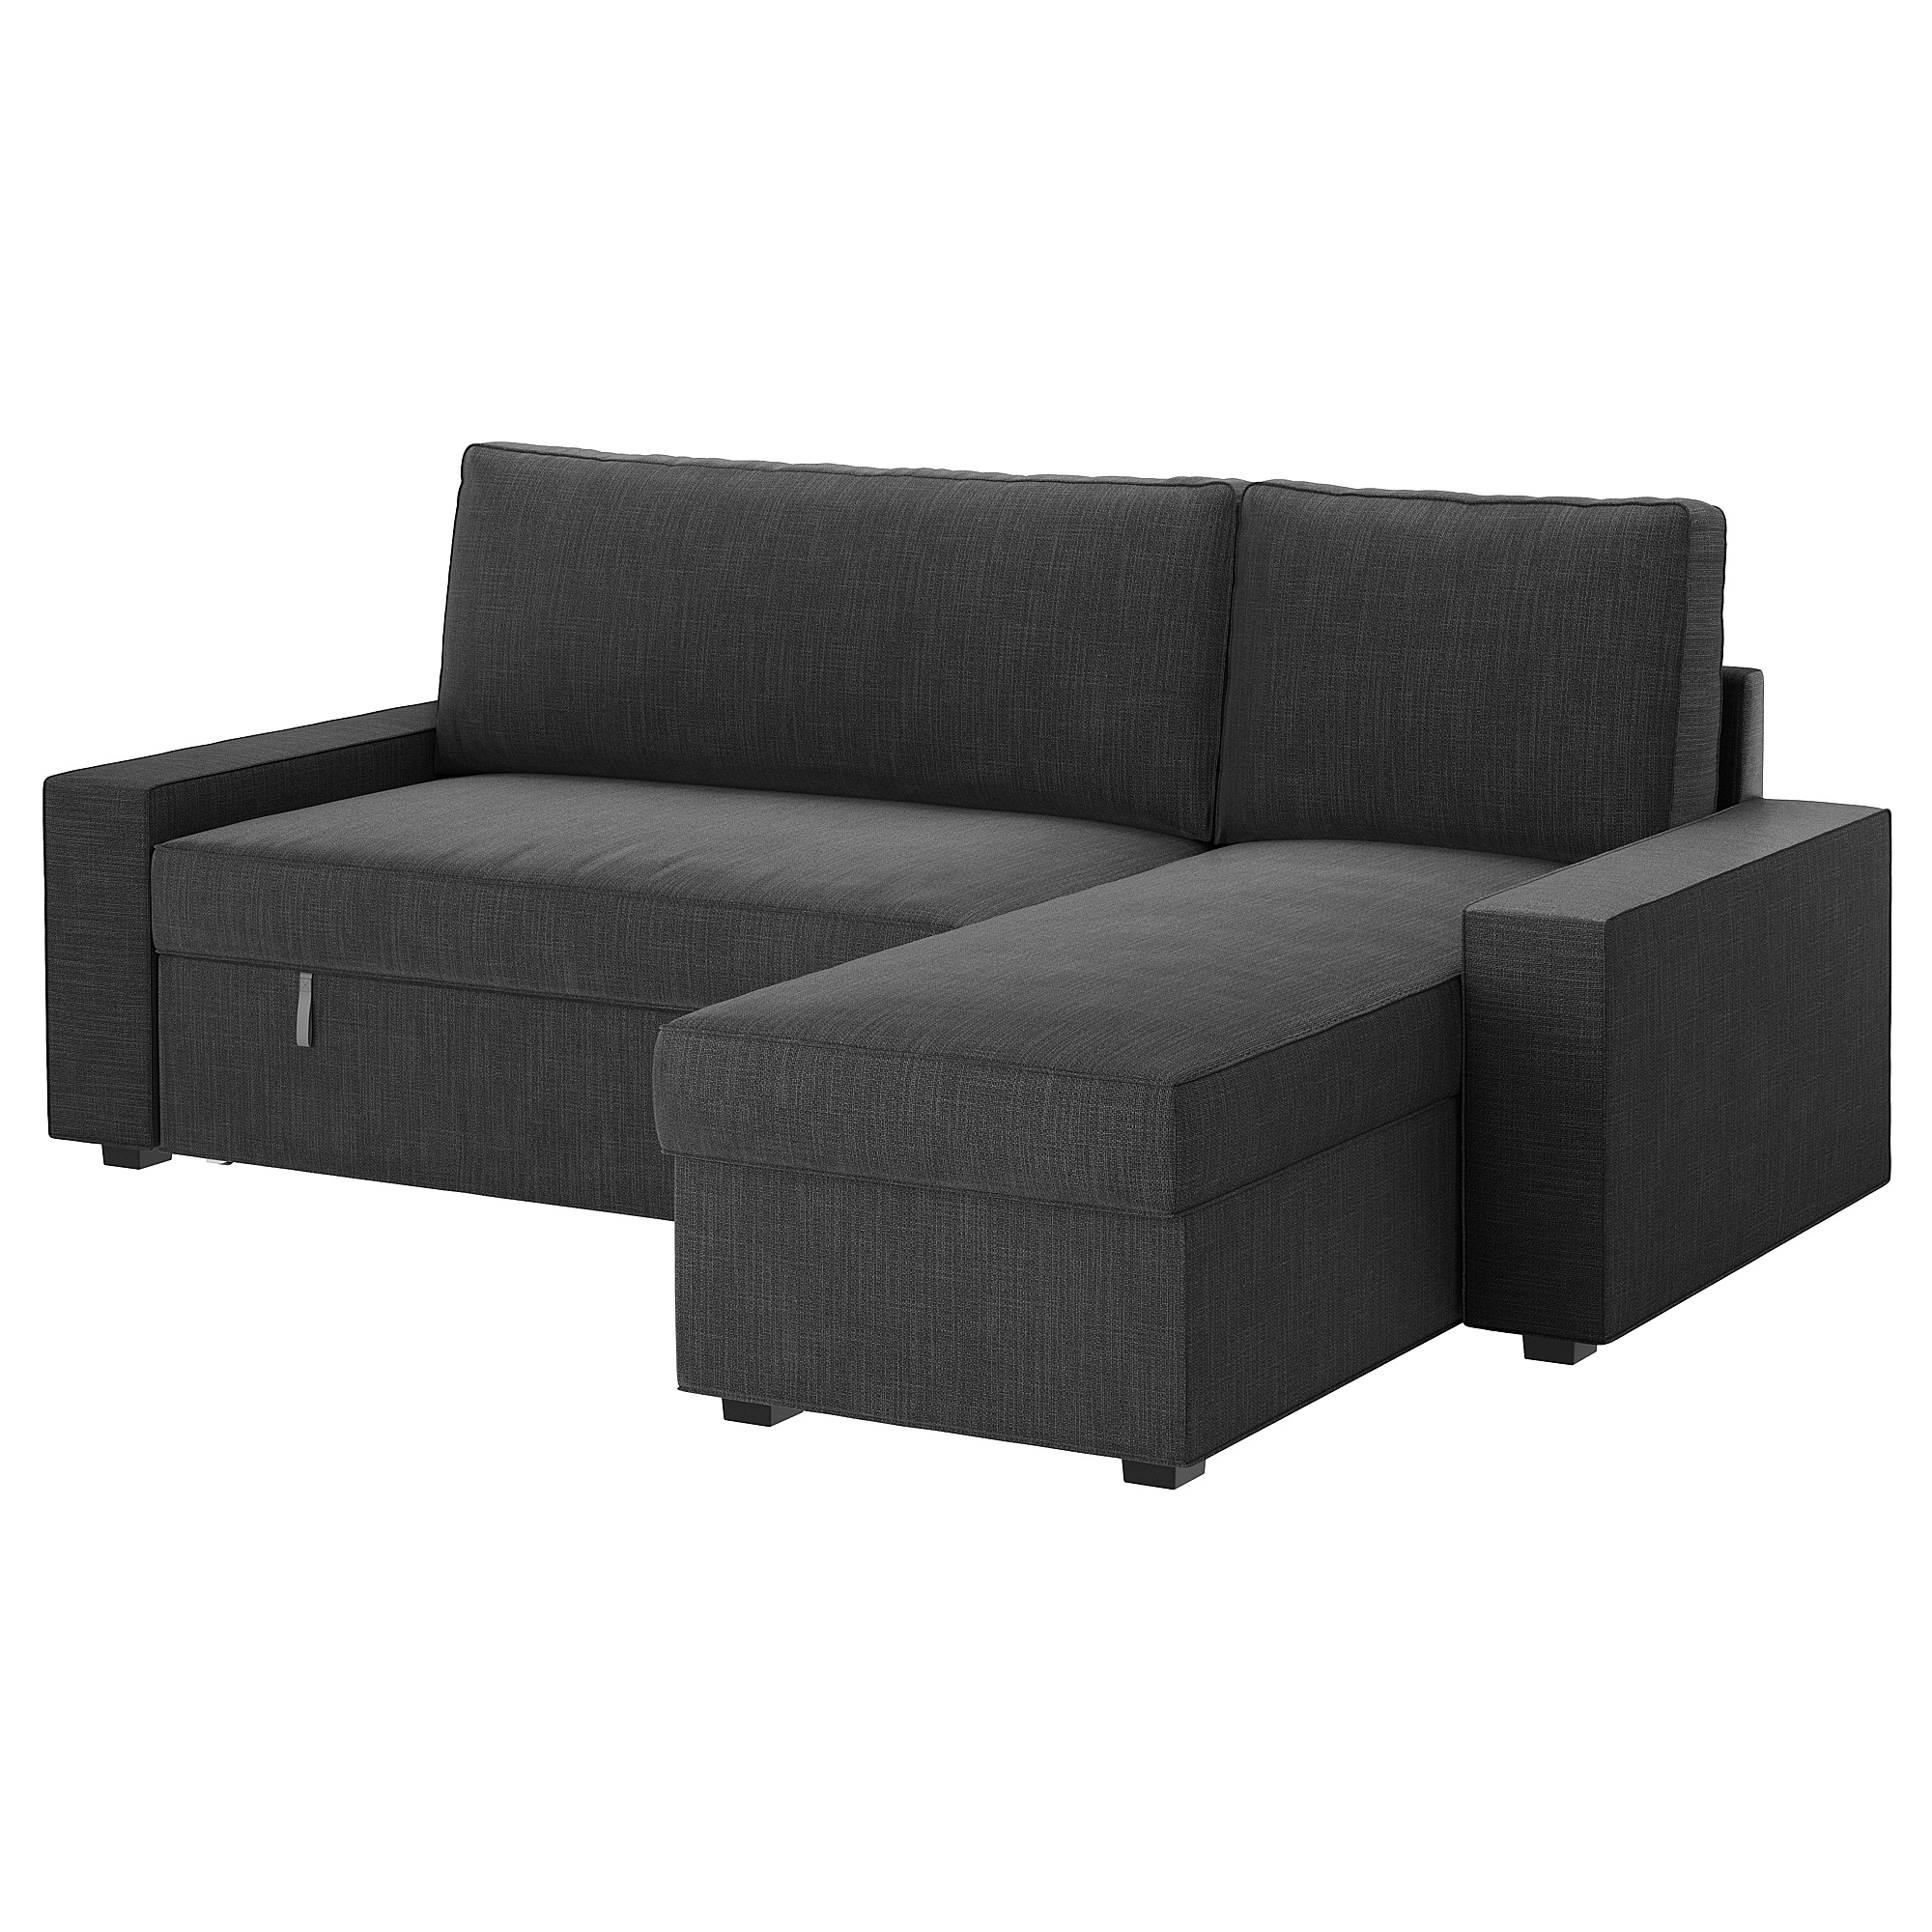 schlafsofa 90 x 180 bestseller shop f r m bel und. Black Bedroom Furniture Sets. Home Design Ideas